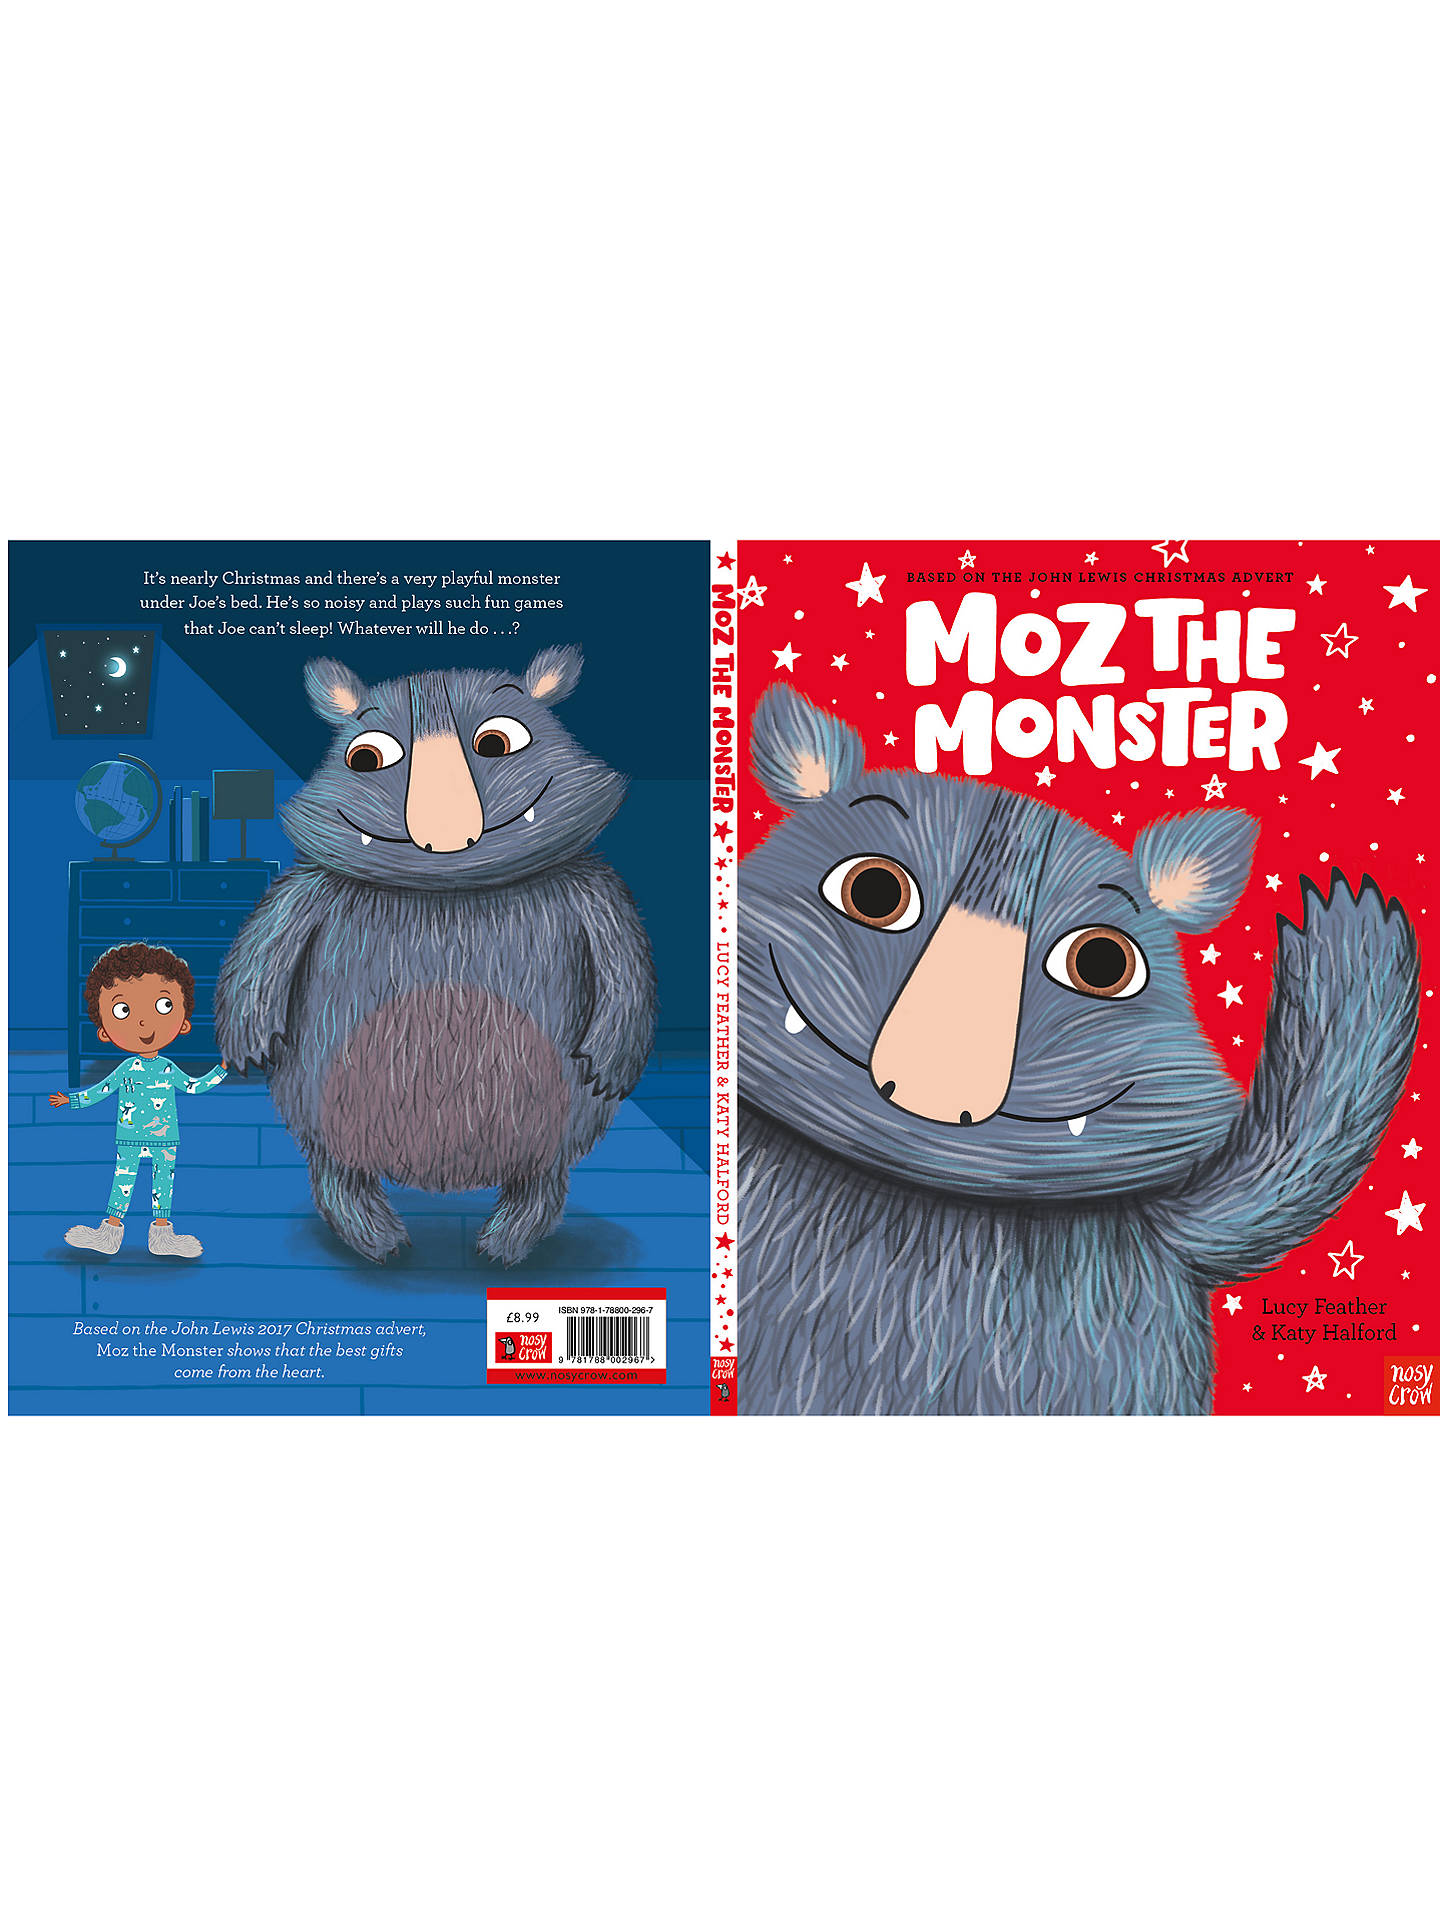 John Lewis Christmas Advert 2017.Moz The Monster Christmas Book